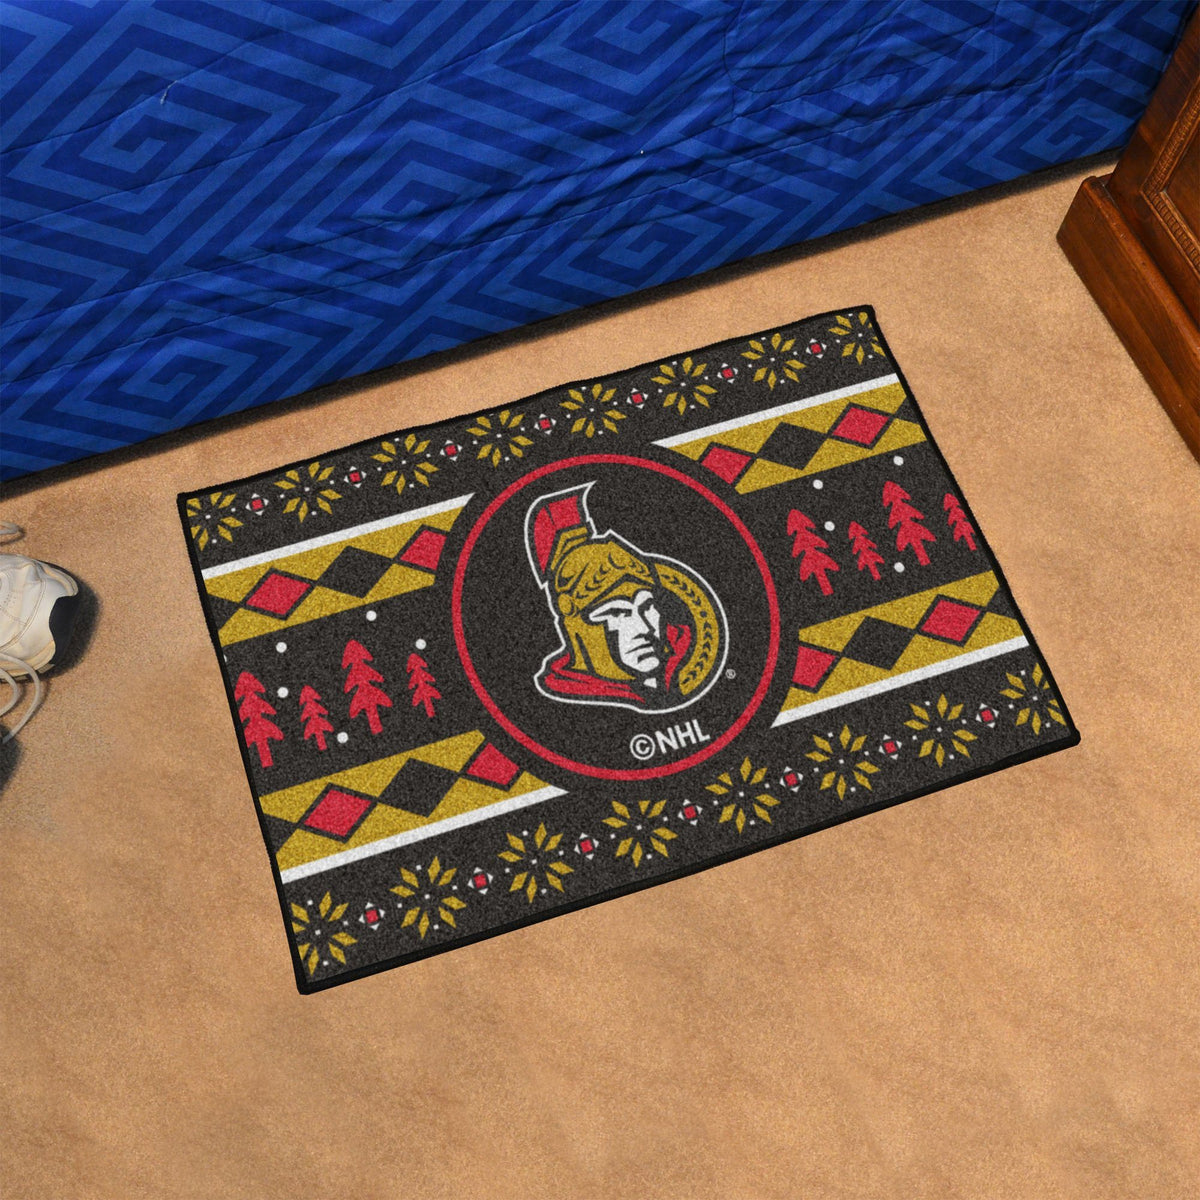 NHL - Holiday Sweater Starter Mat NHL Mats, Rectangular Mats, Holiday Sweater Starter Mat, NHL, Home Fan Mats Ottawa Senators